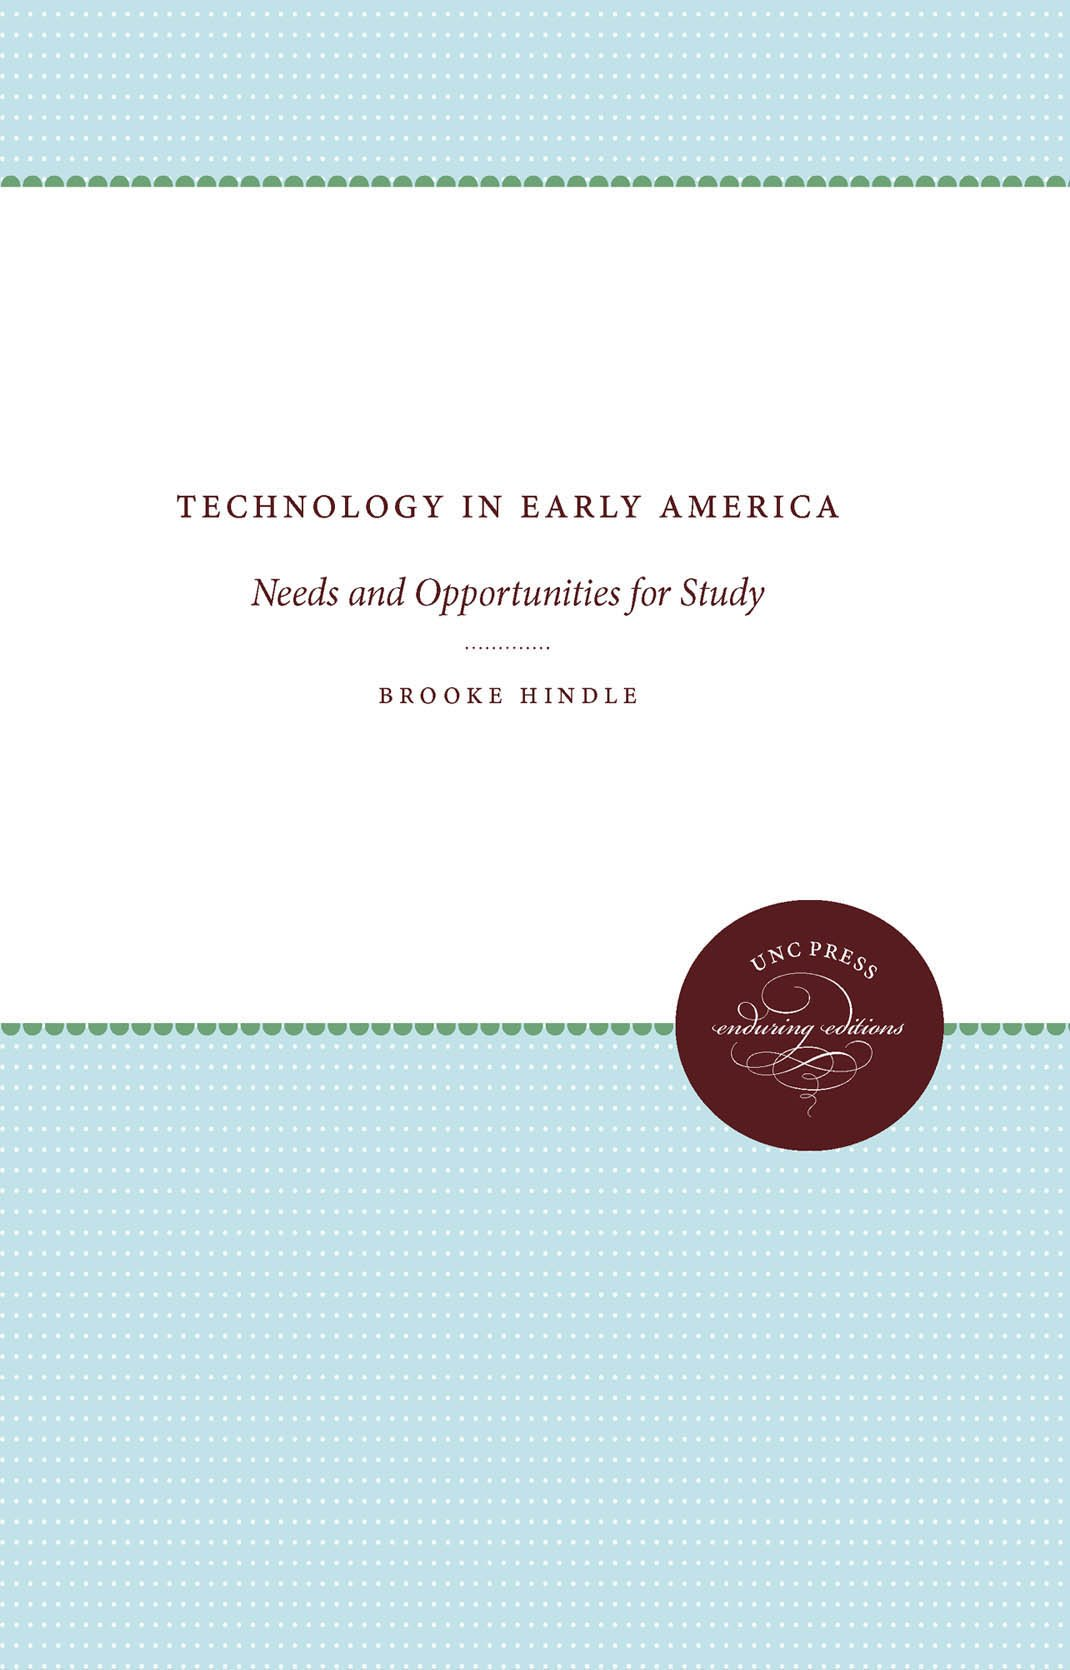 Download Technology in Early America: Needs and Opportunities for Study (Published by the Omohundro Institute of Early American History and Culture and the University of North Carolina Press) PDF